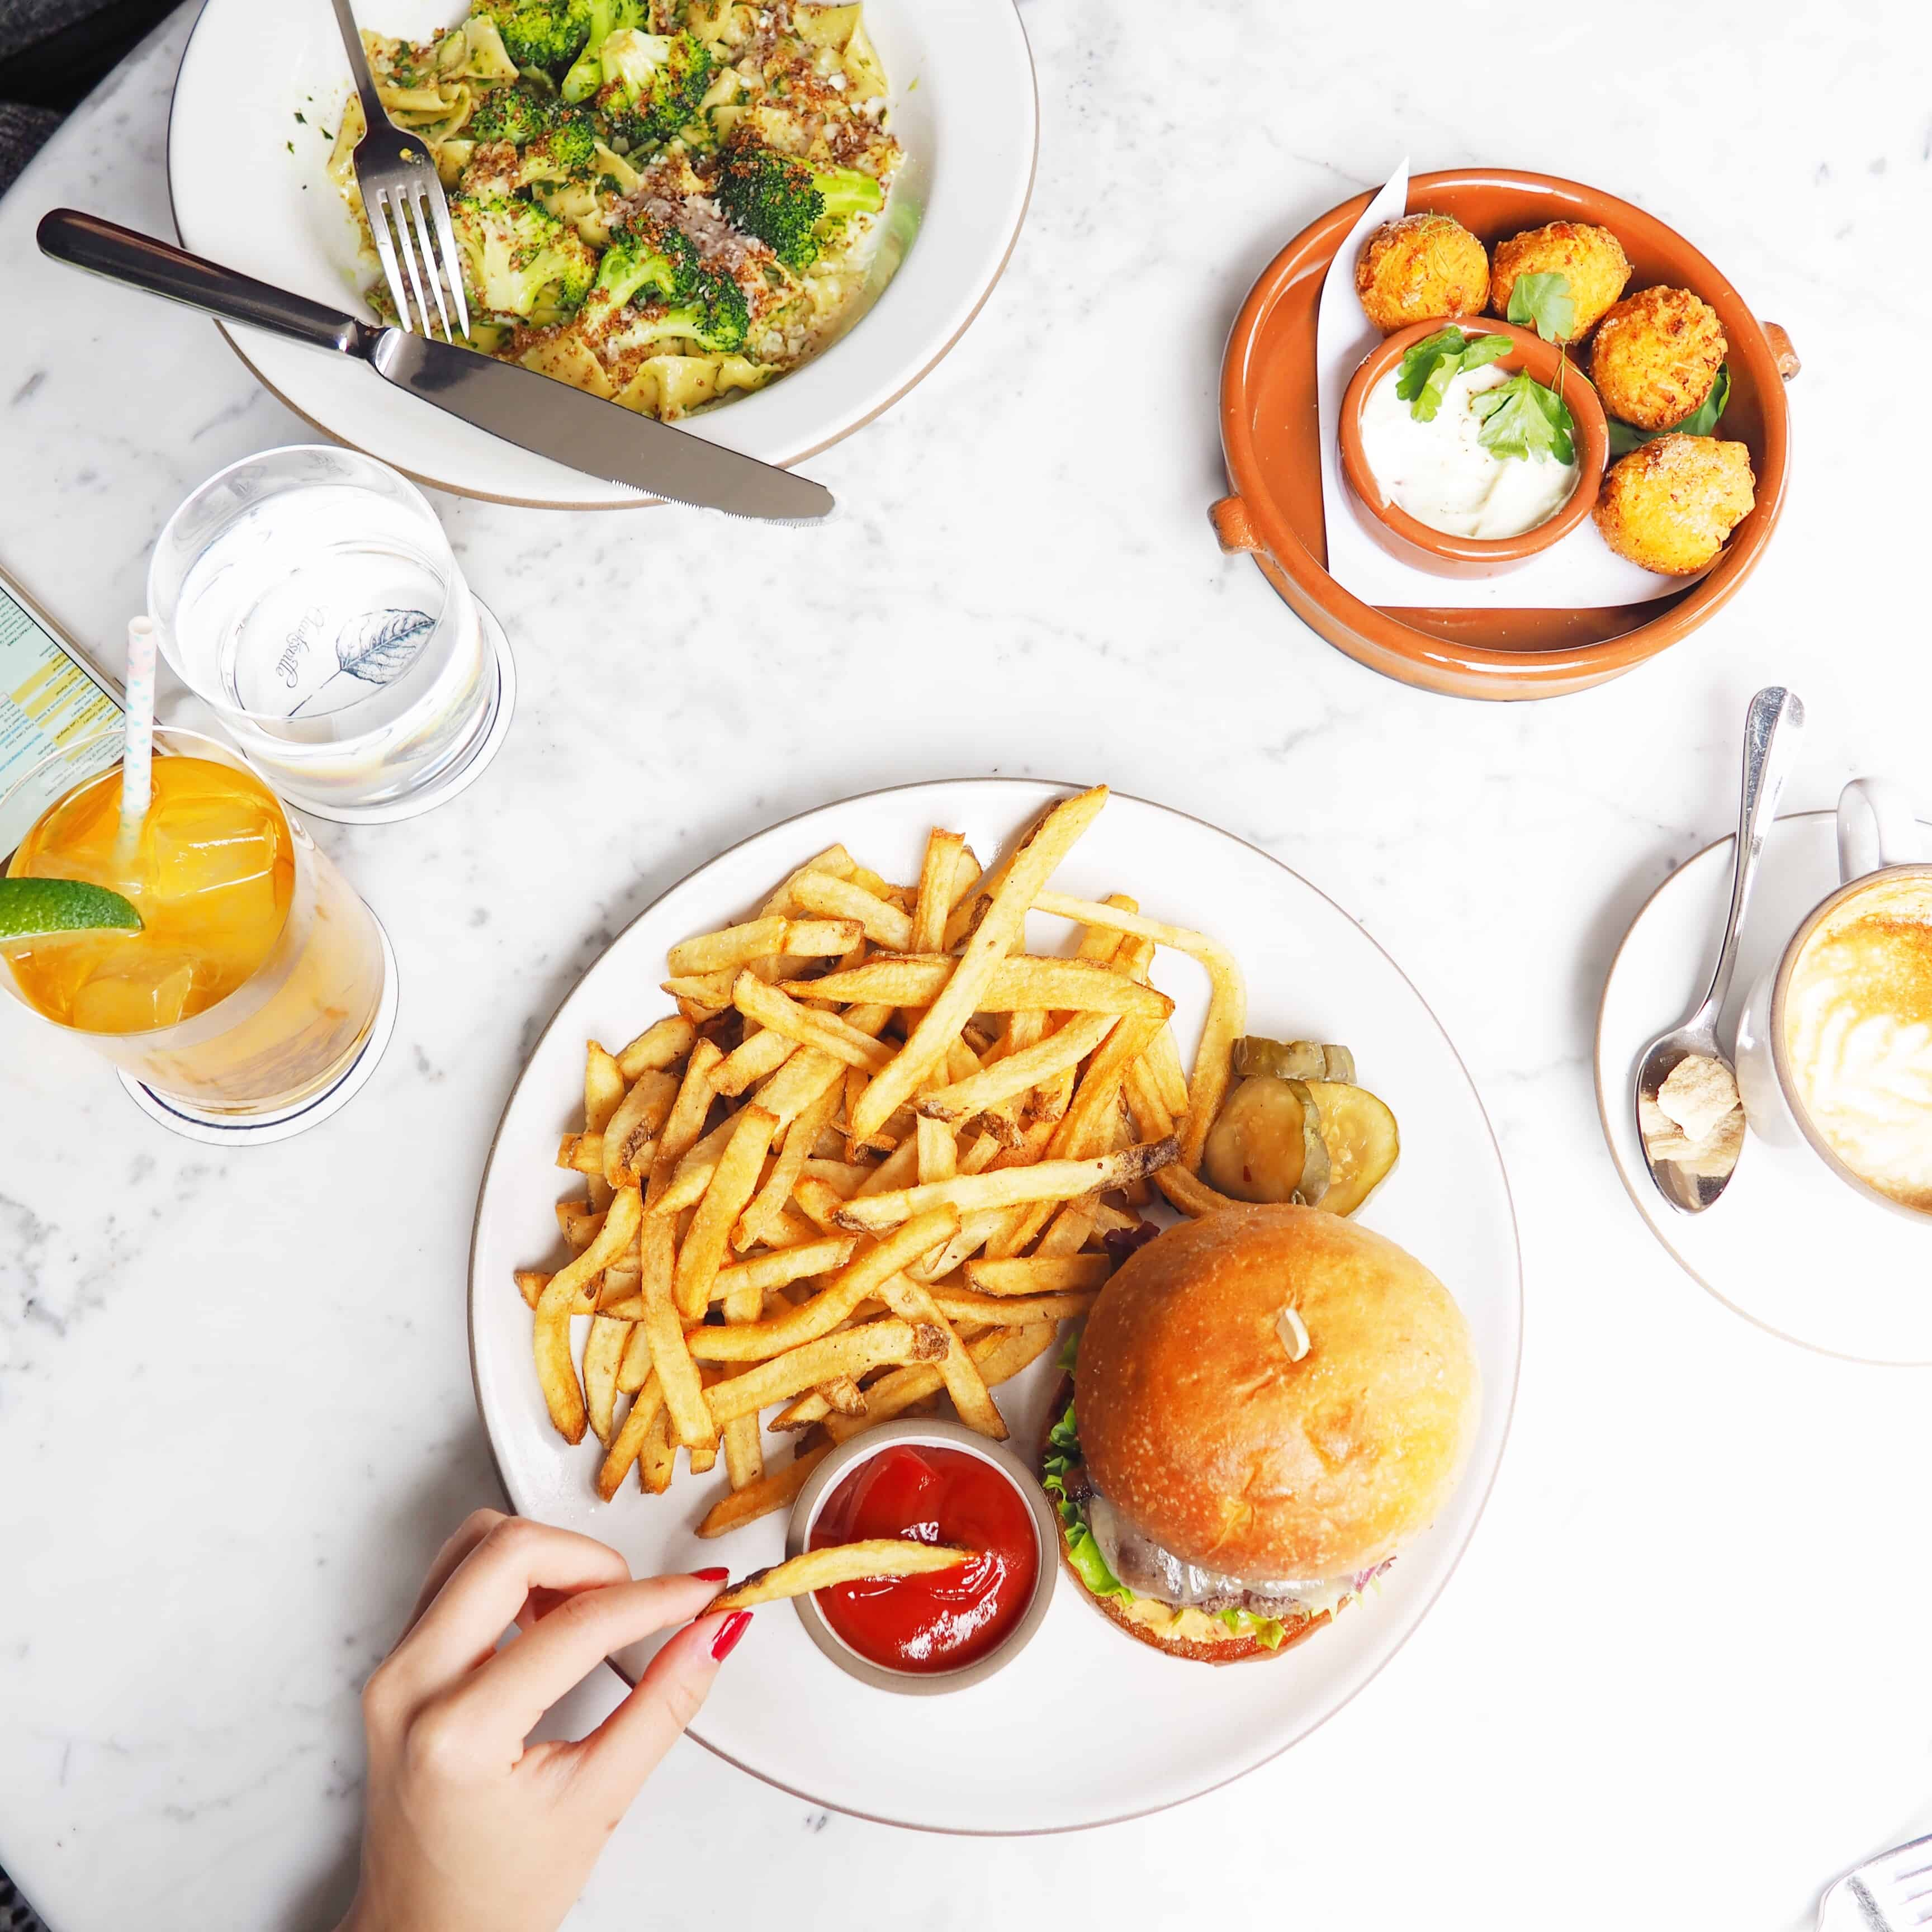 11 Top Spots For The Best French Fries In Austin A Taste